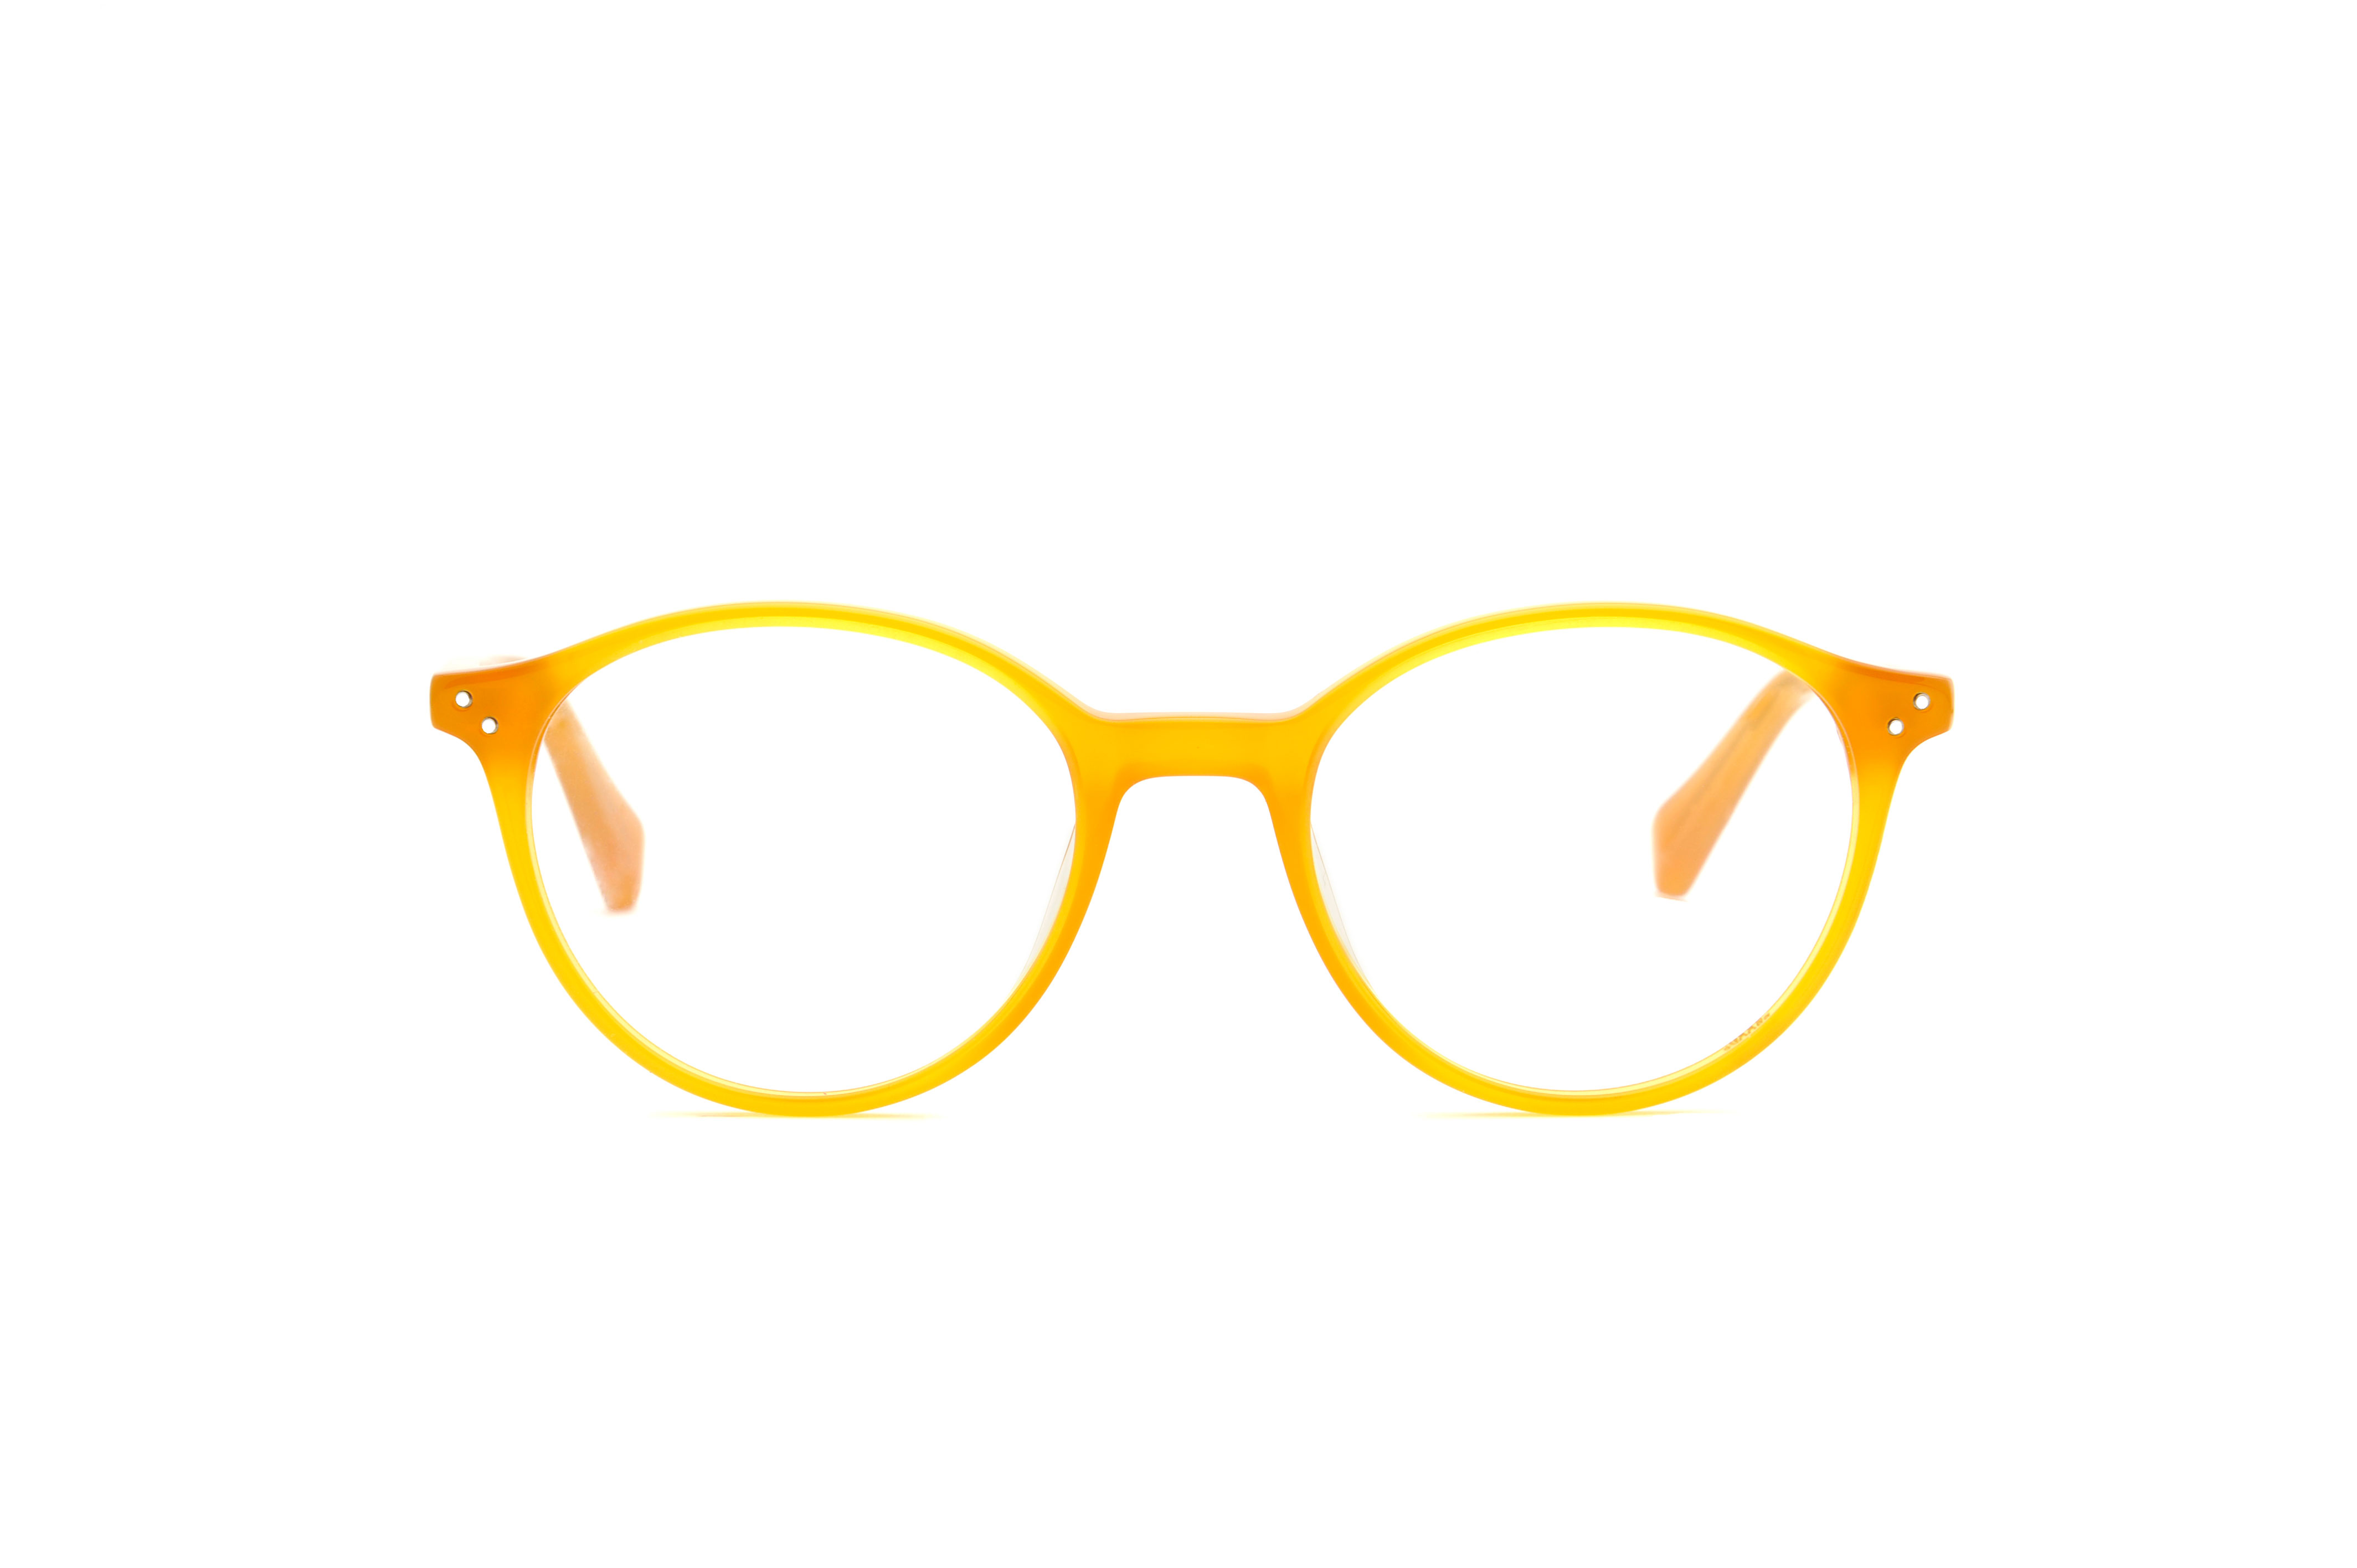 Brooks acetate rounded yellow sunglasses by GIGI Studios